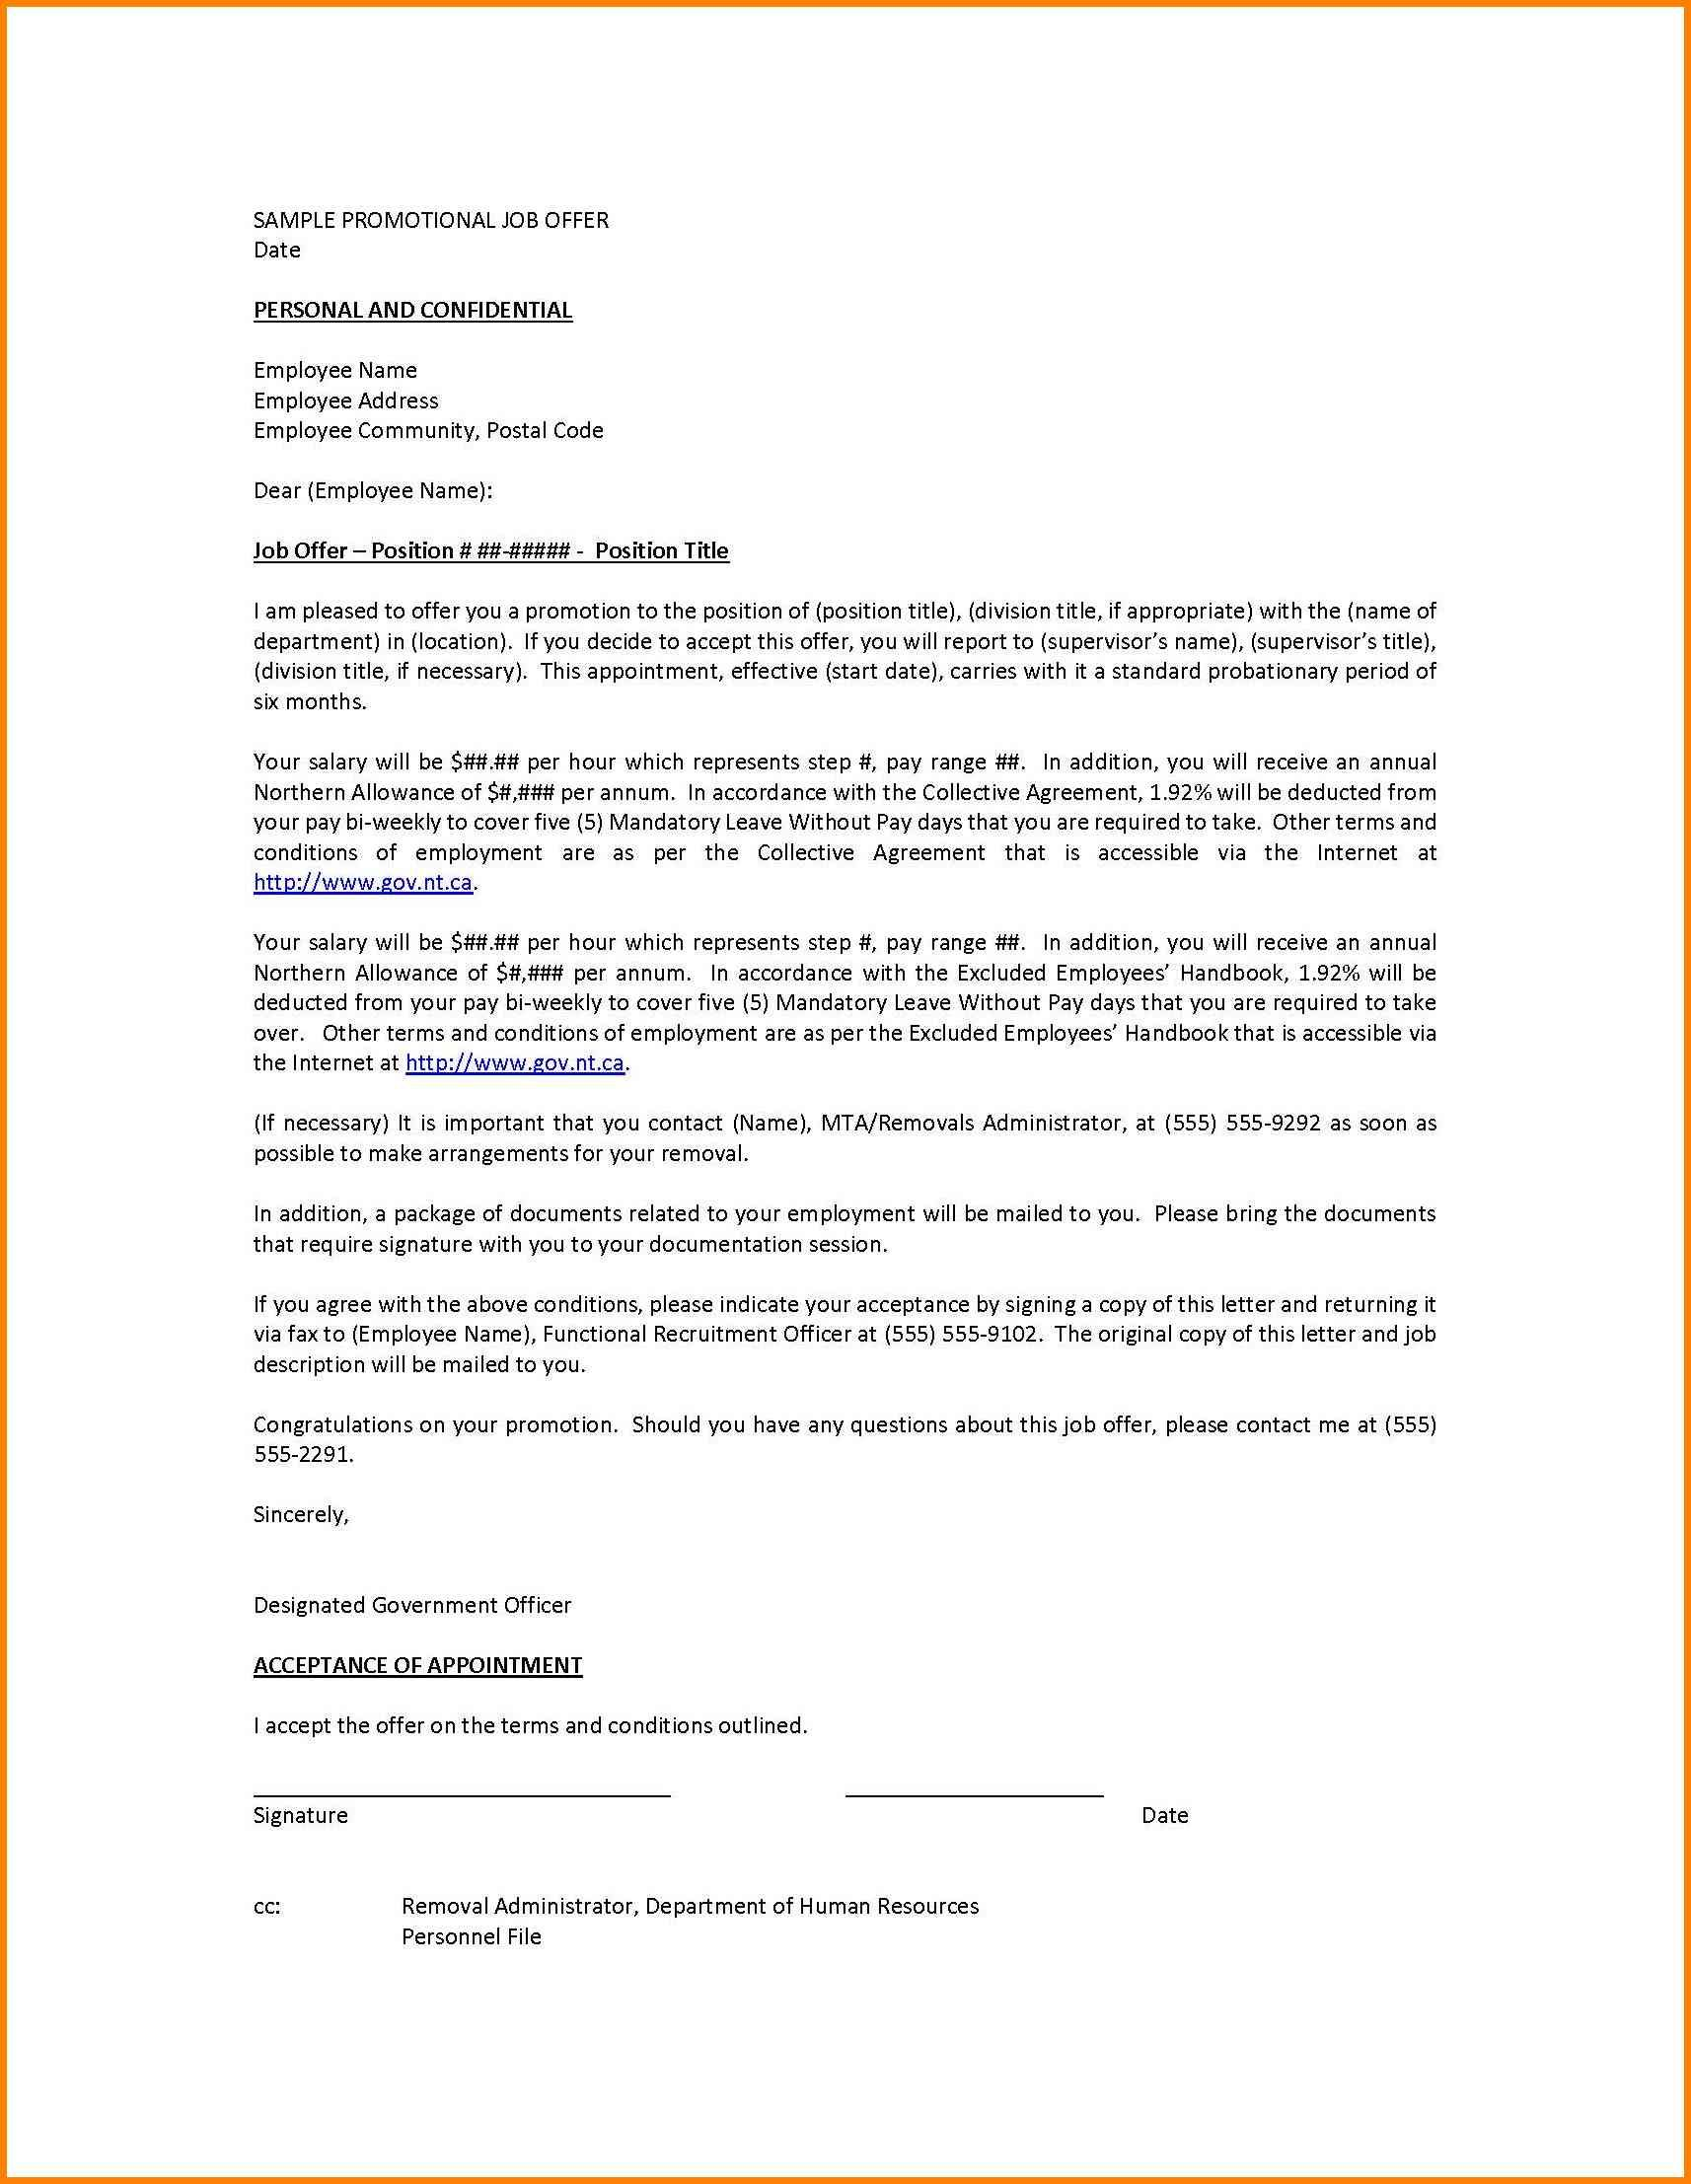 Claim Appeal Letter Sample Motor Insurance Refund  Home Design